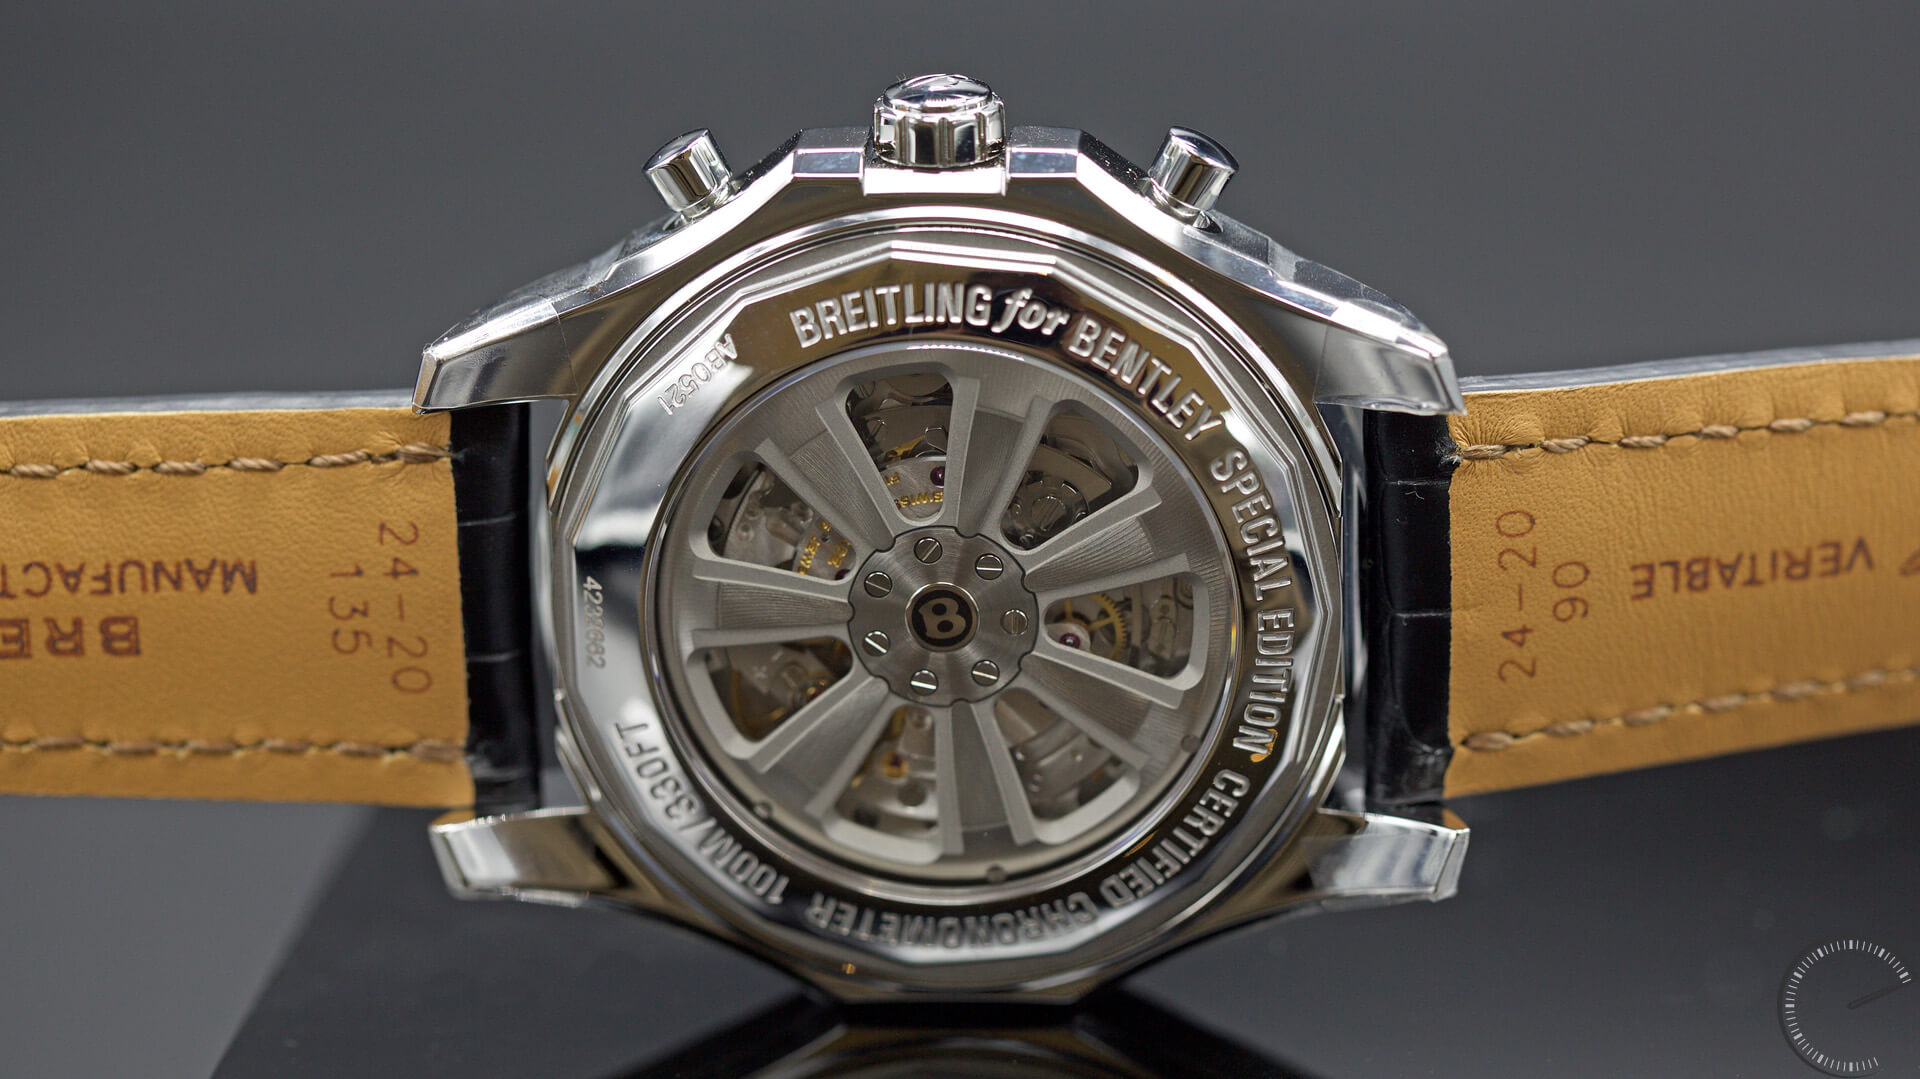 breitling swiss light watches classic body bentley gmt for